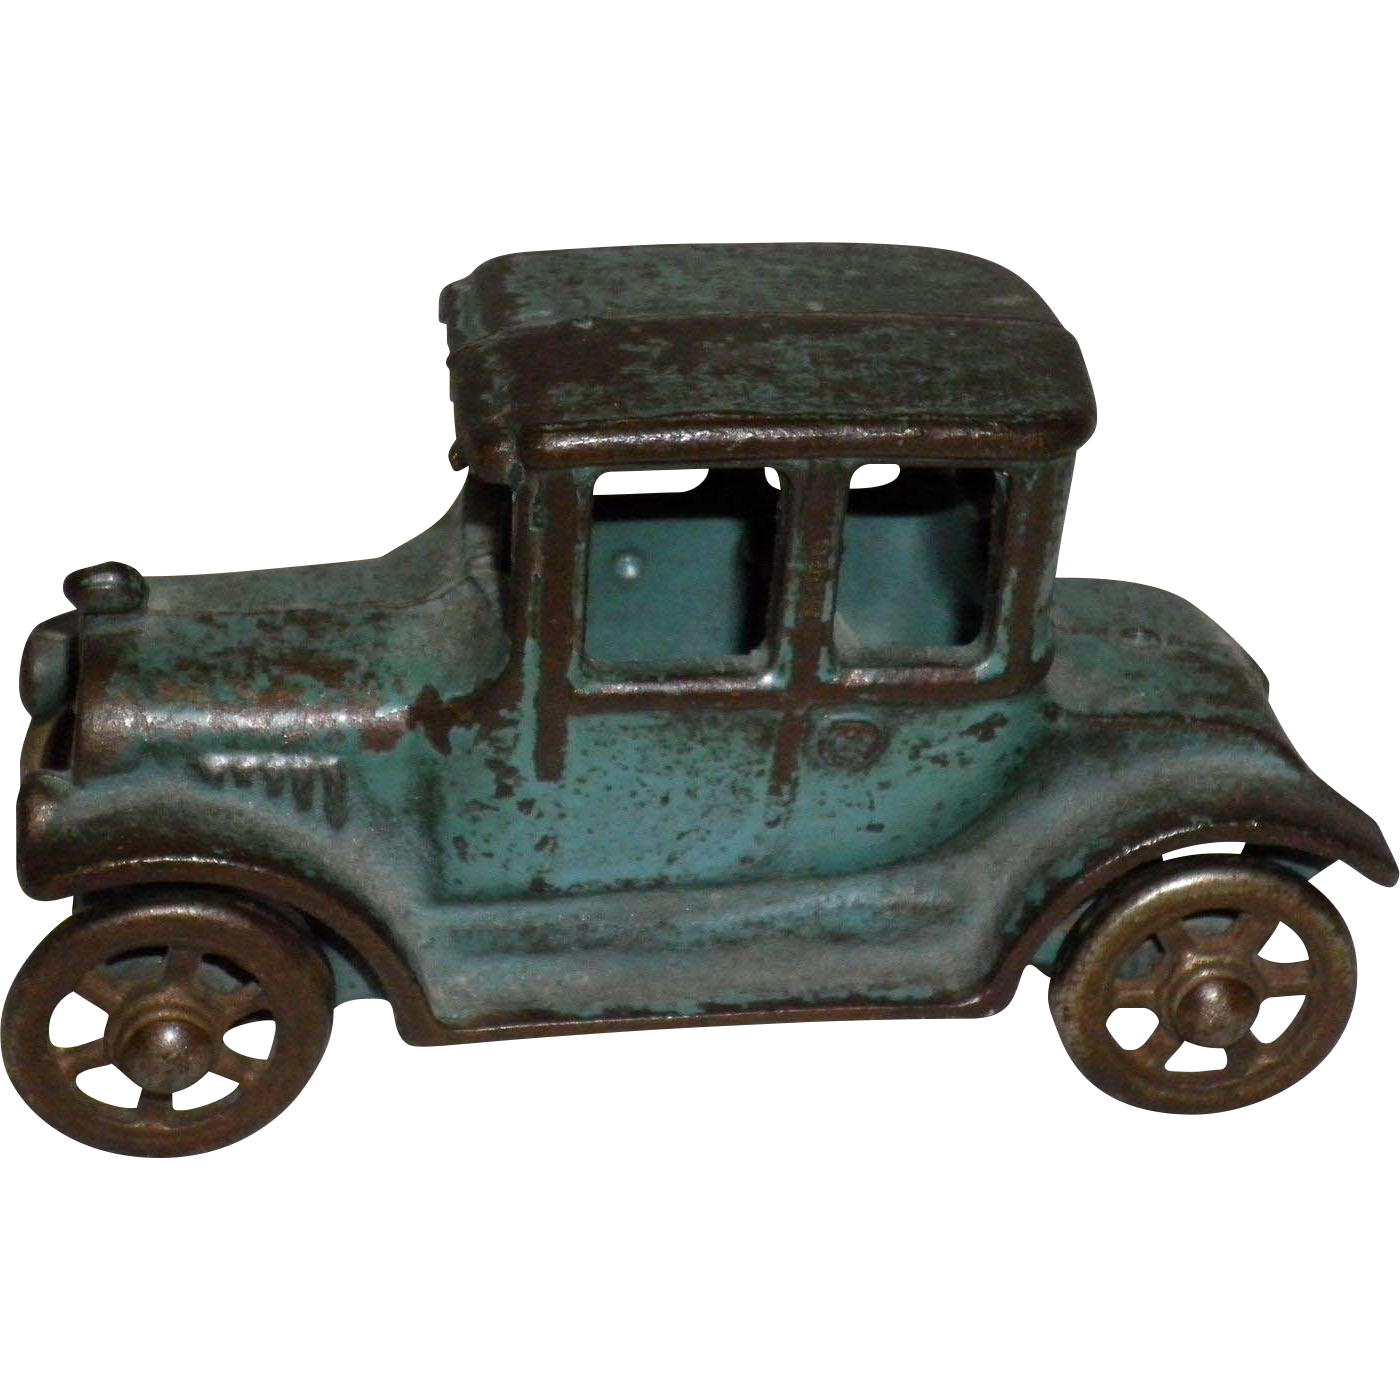 Vintage 2 Door Cast Iron Ford Model A